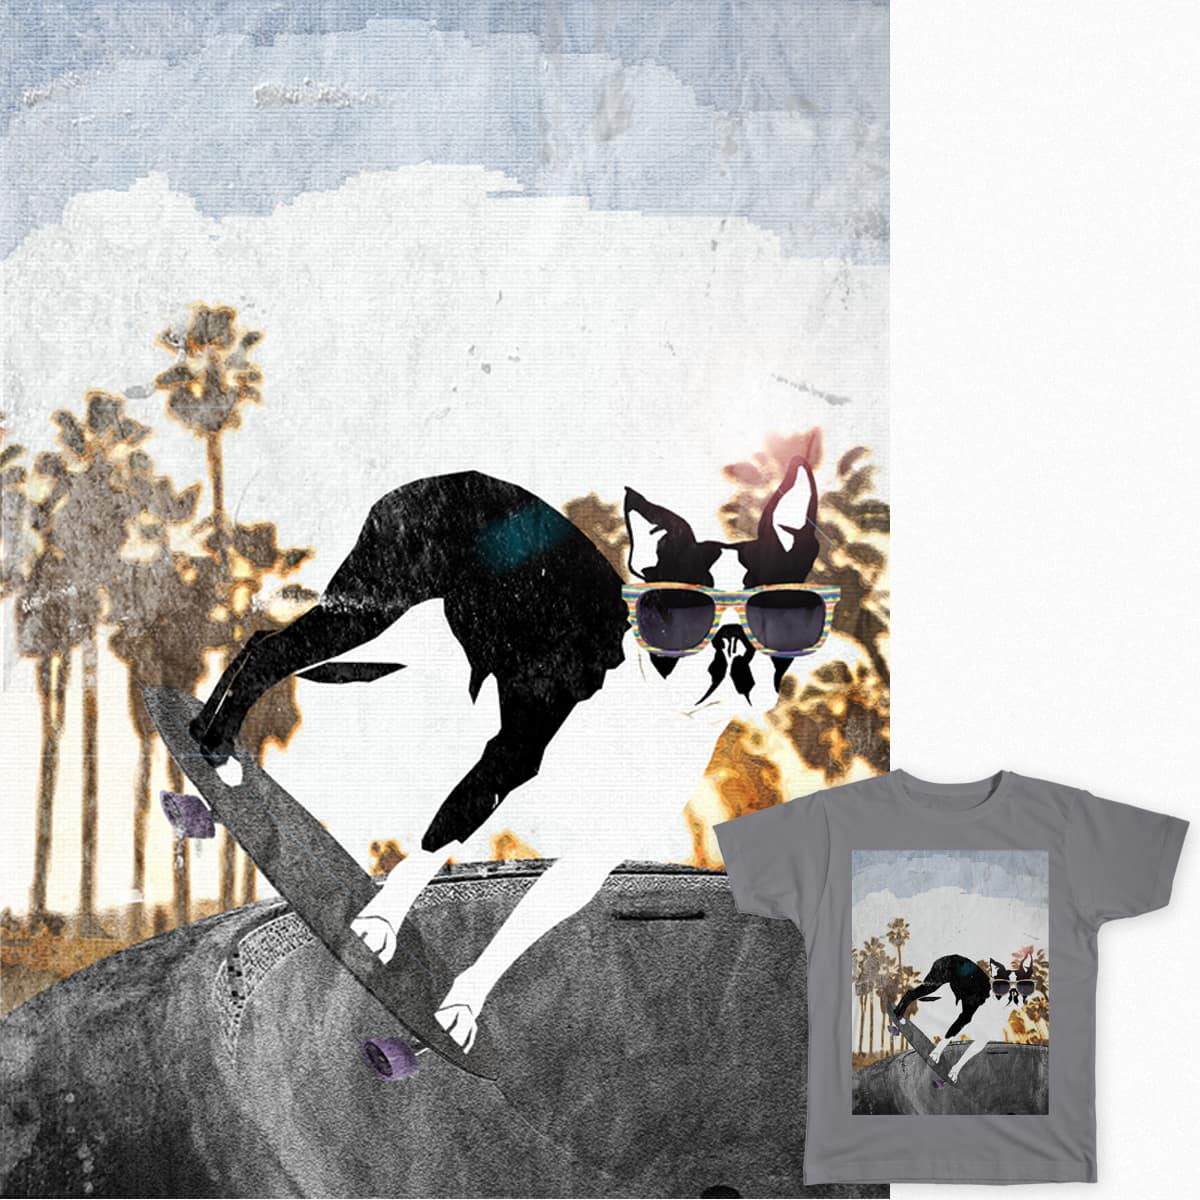 Terrier Shredder by rizqa.samaai on Threadless